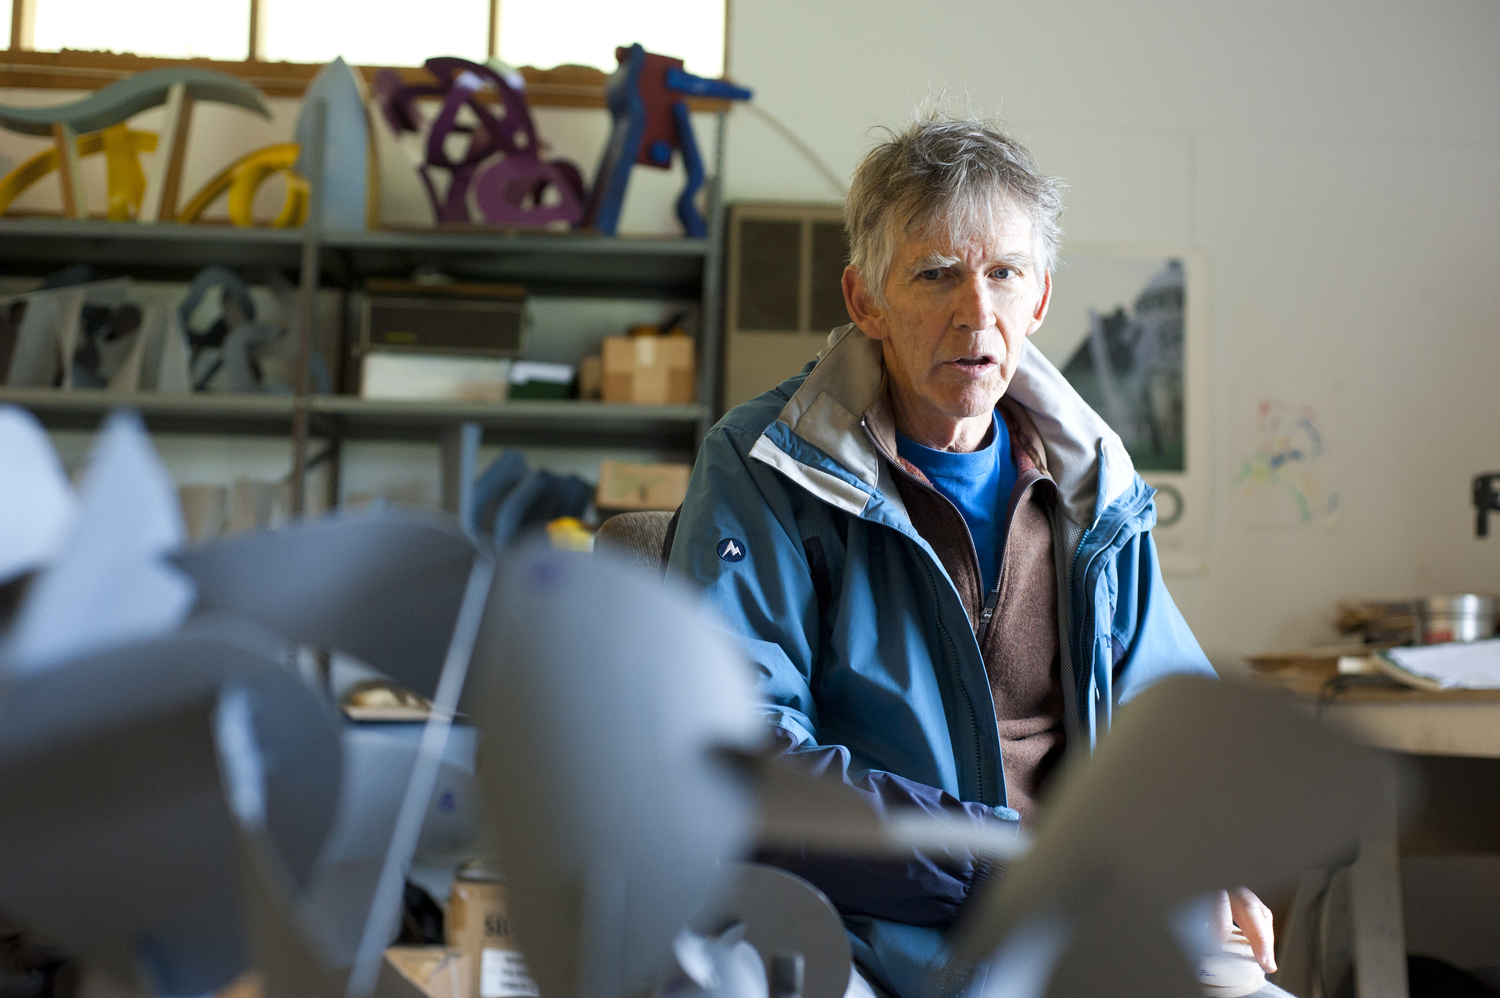 Sculptor David Stromeyer discusses his 44 years of work in his studio in Enosburg Falls, Vermont, June 6, 2014. He opened Cold Hollow Sculpture Park in the summer of 2014 and features his steel sculptures throughout acres of grassy fields.